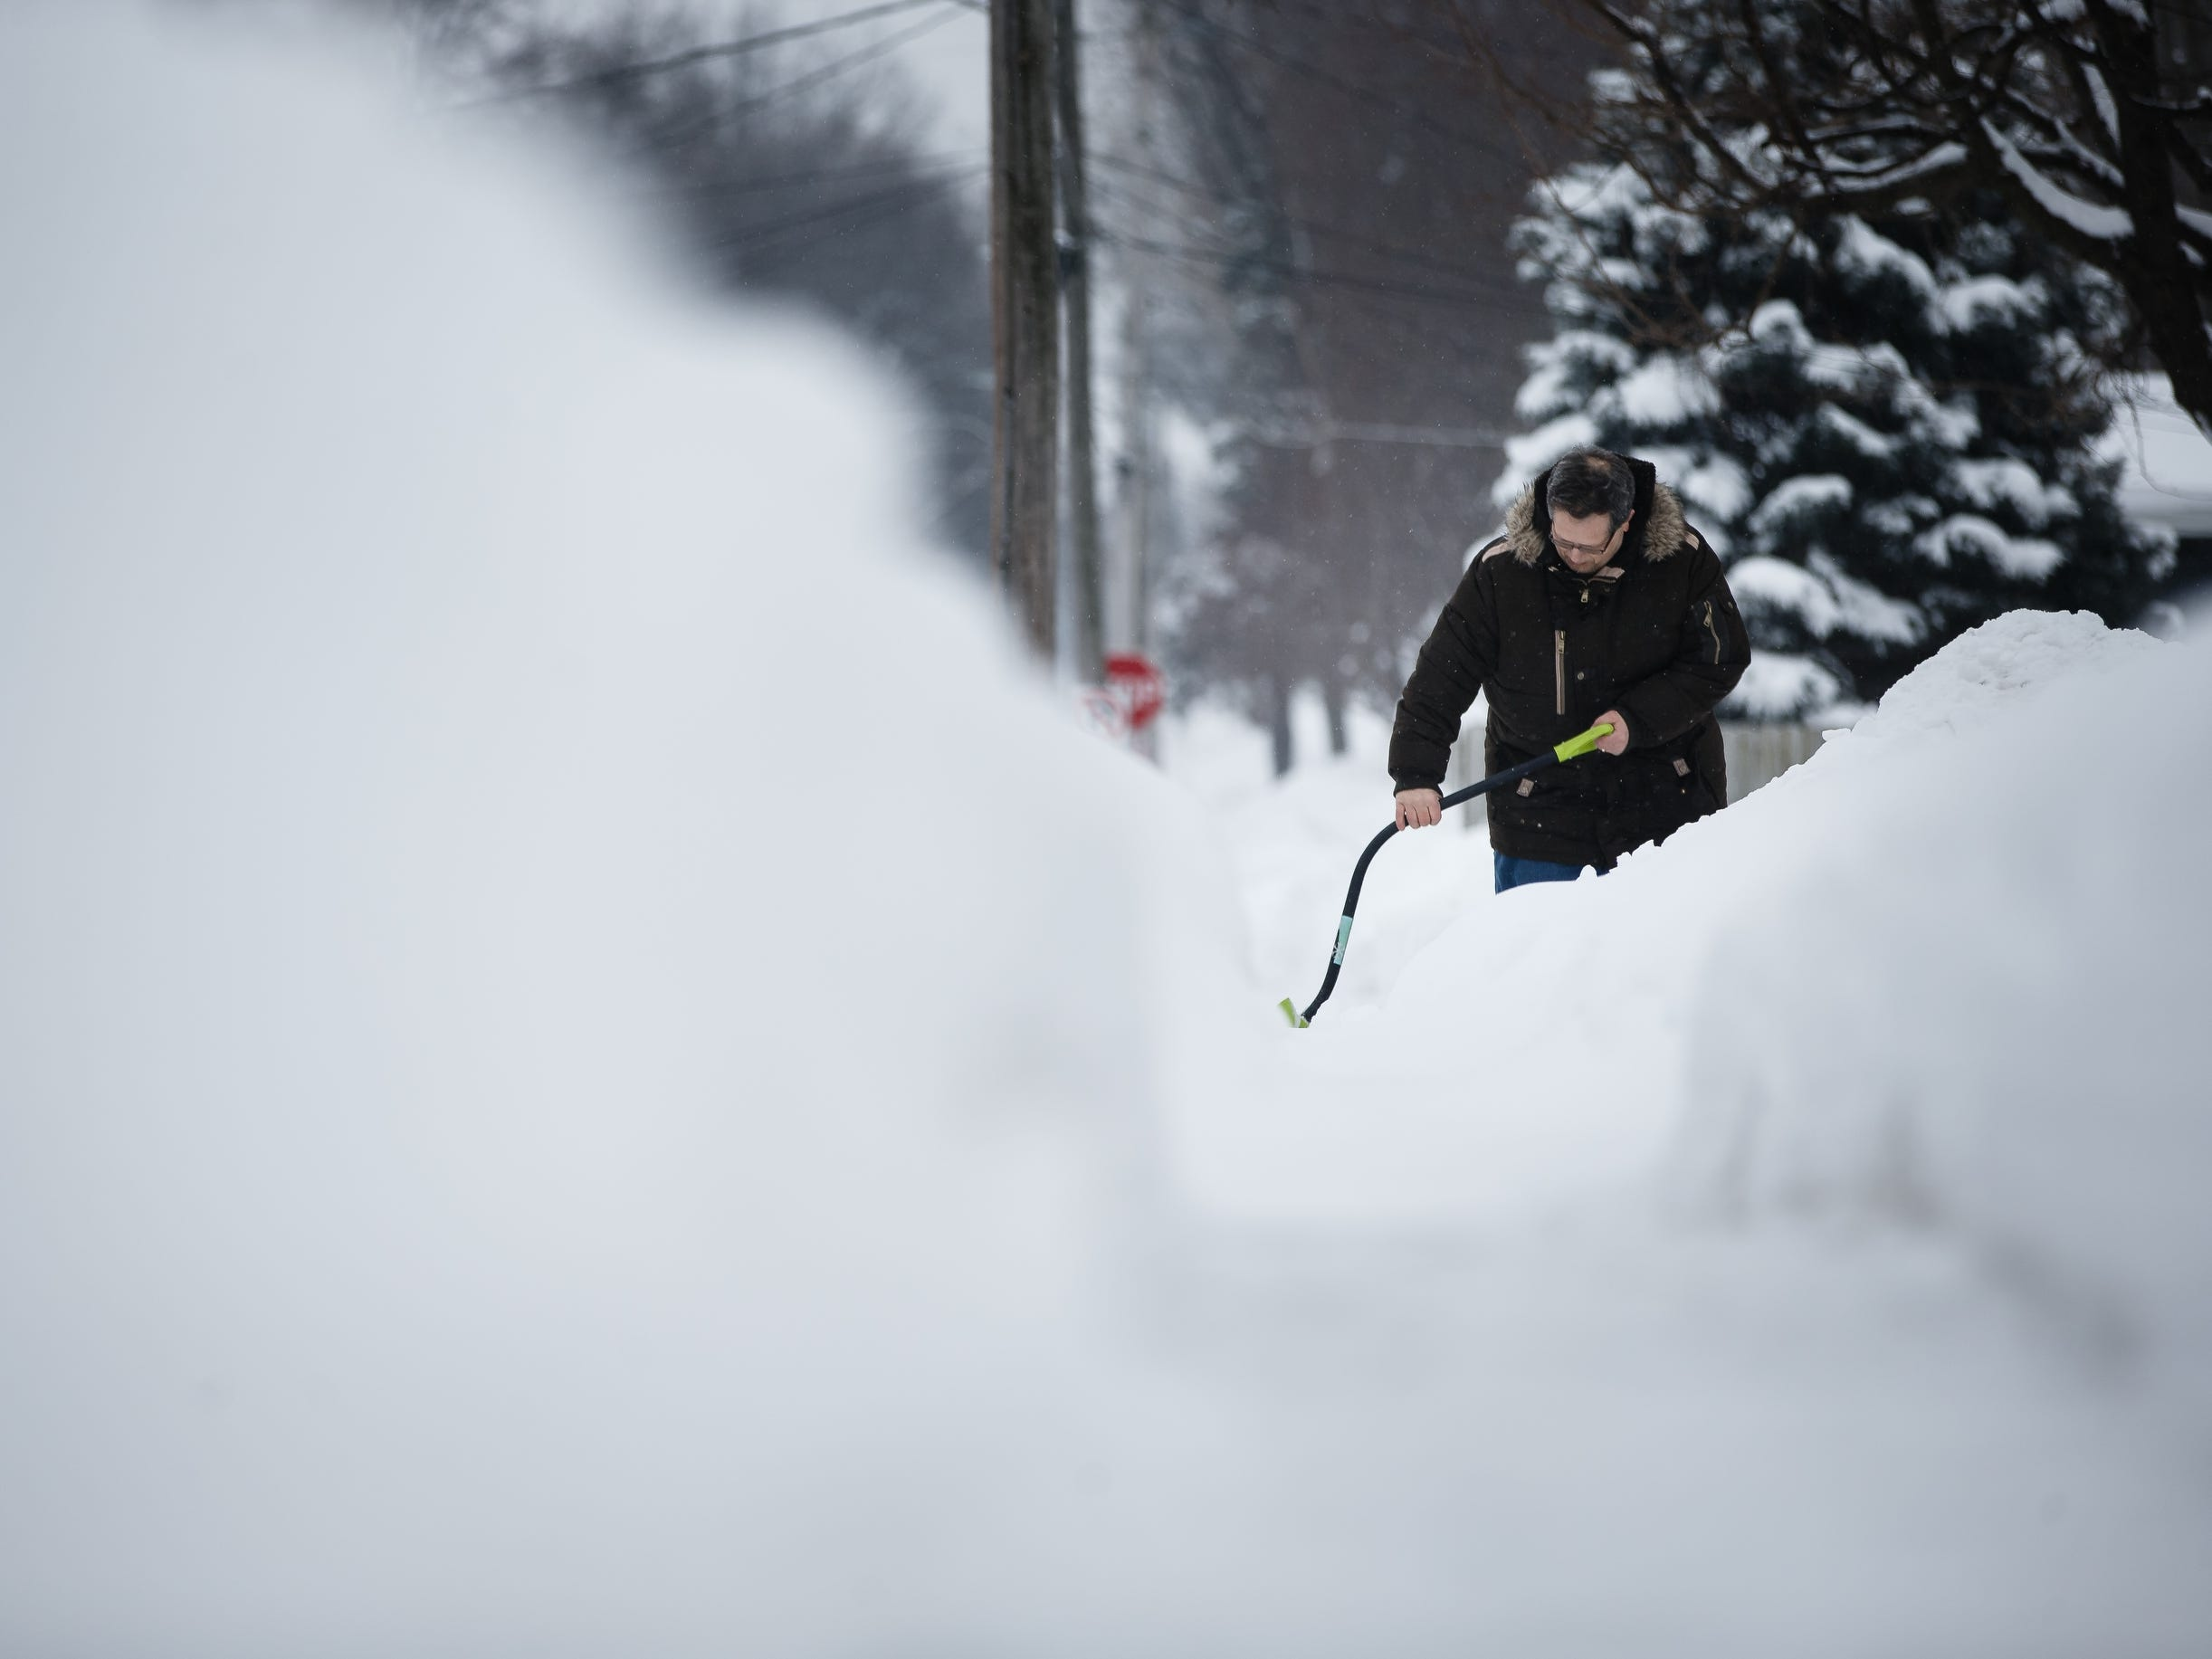 No new record for February snowfall, but Iowa is days away from another wintry blast